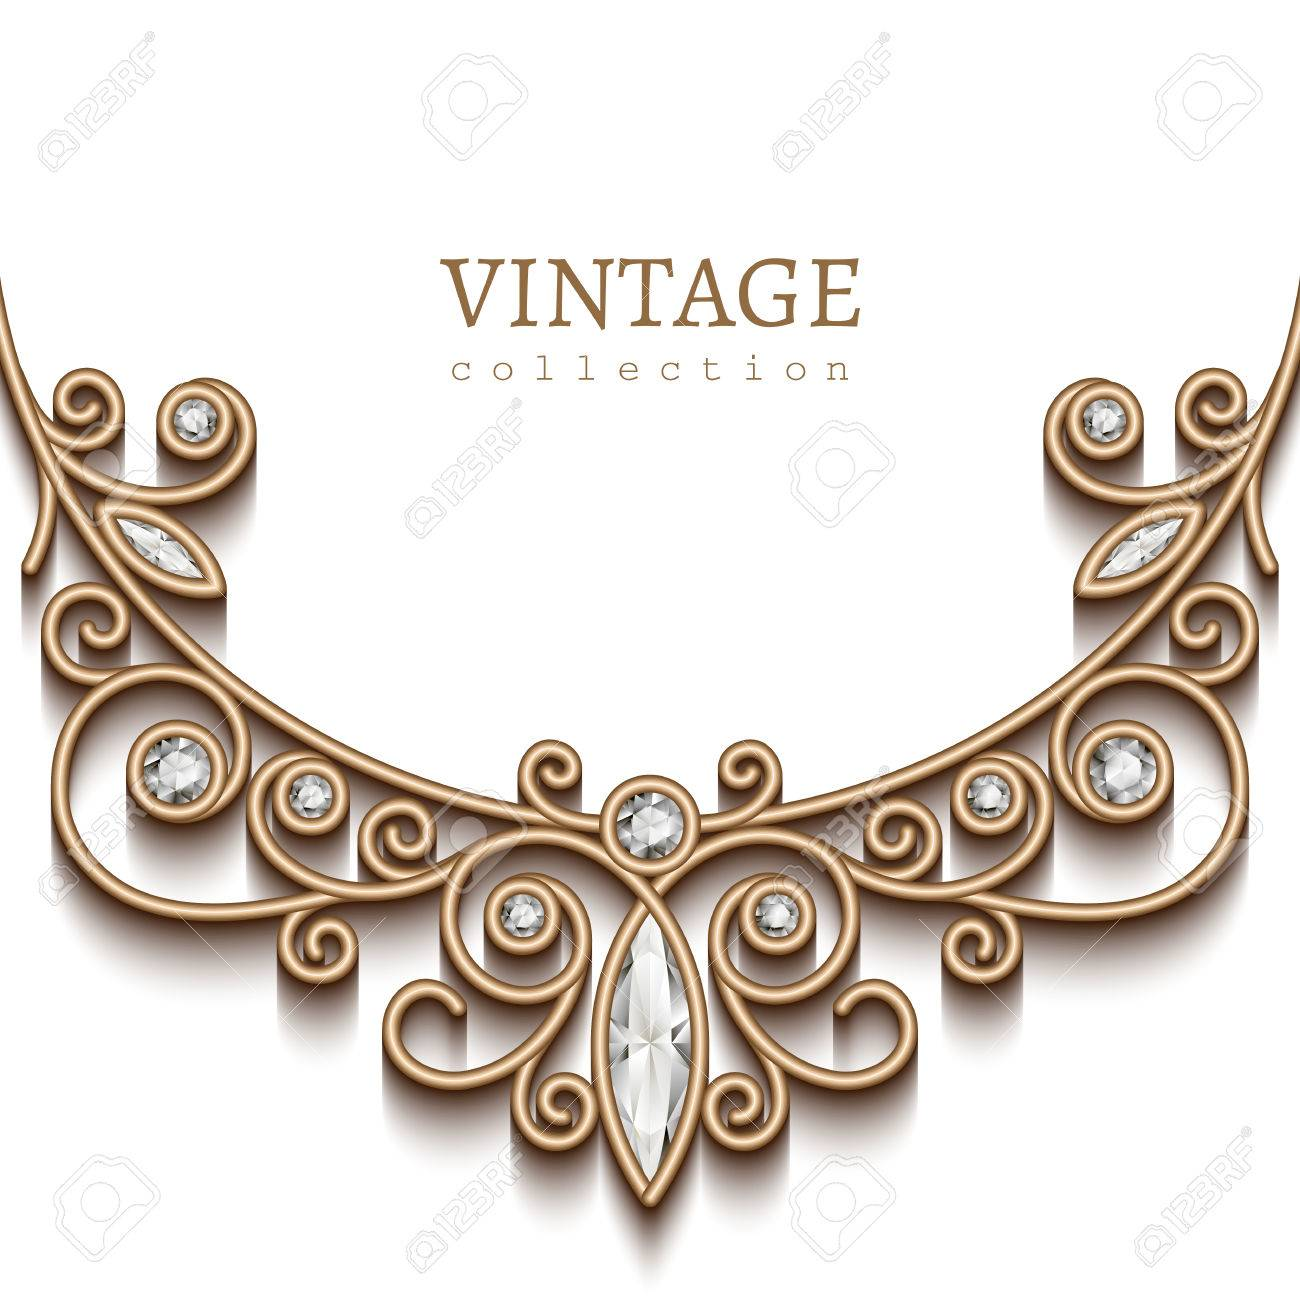 Vintage background with gold vignette on white background, jewellery decoration, filigree diamond necklace, elegant greeting card or invitation template - 43127987